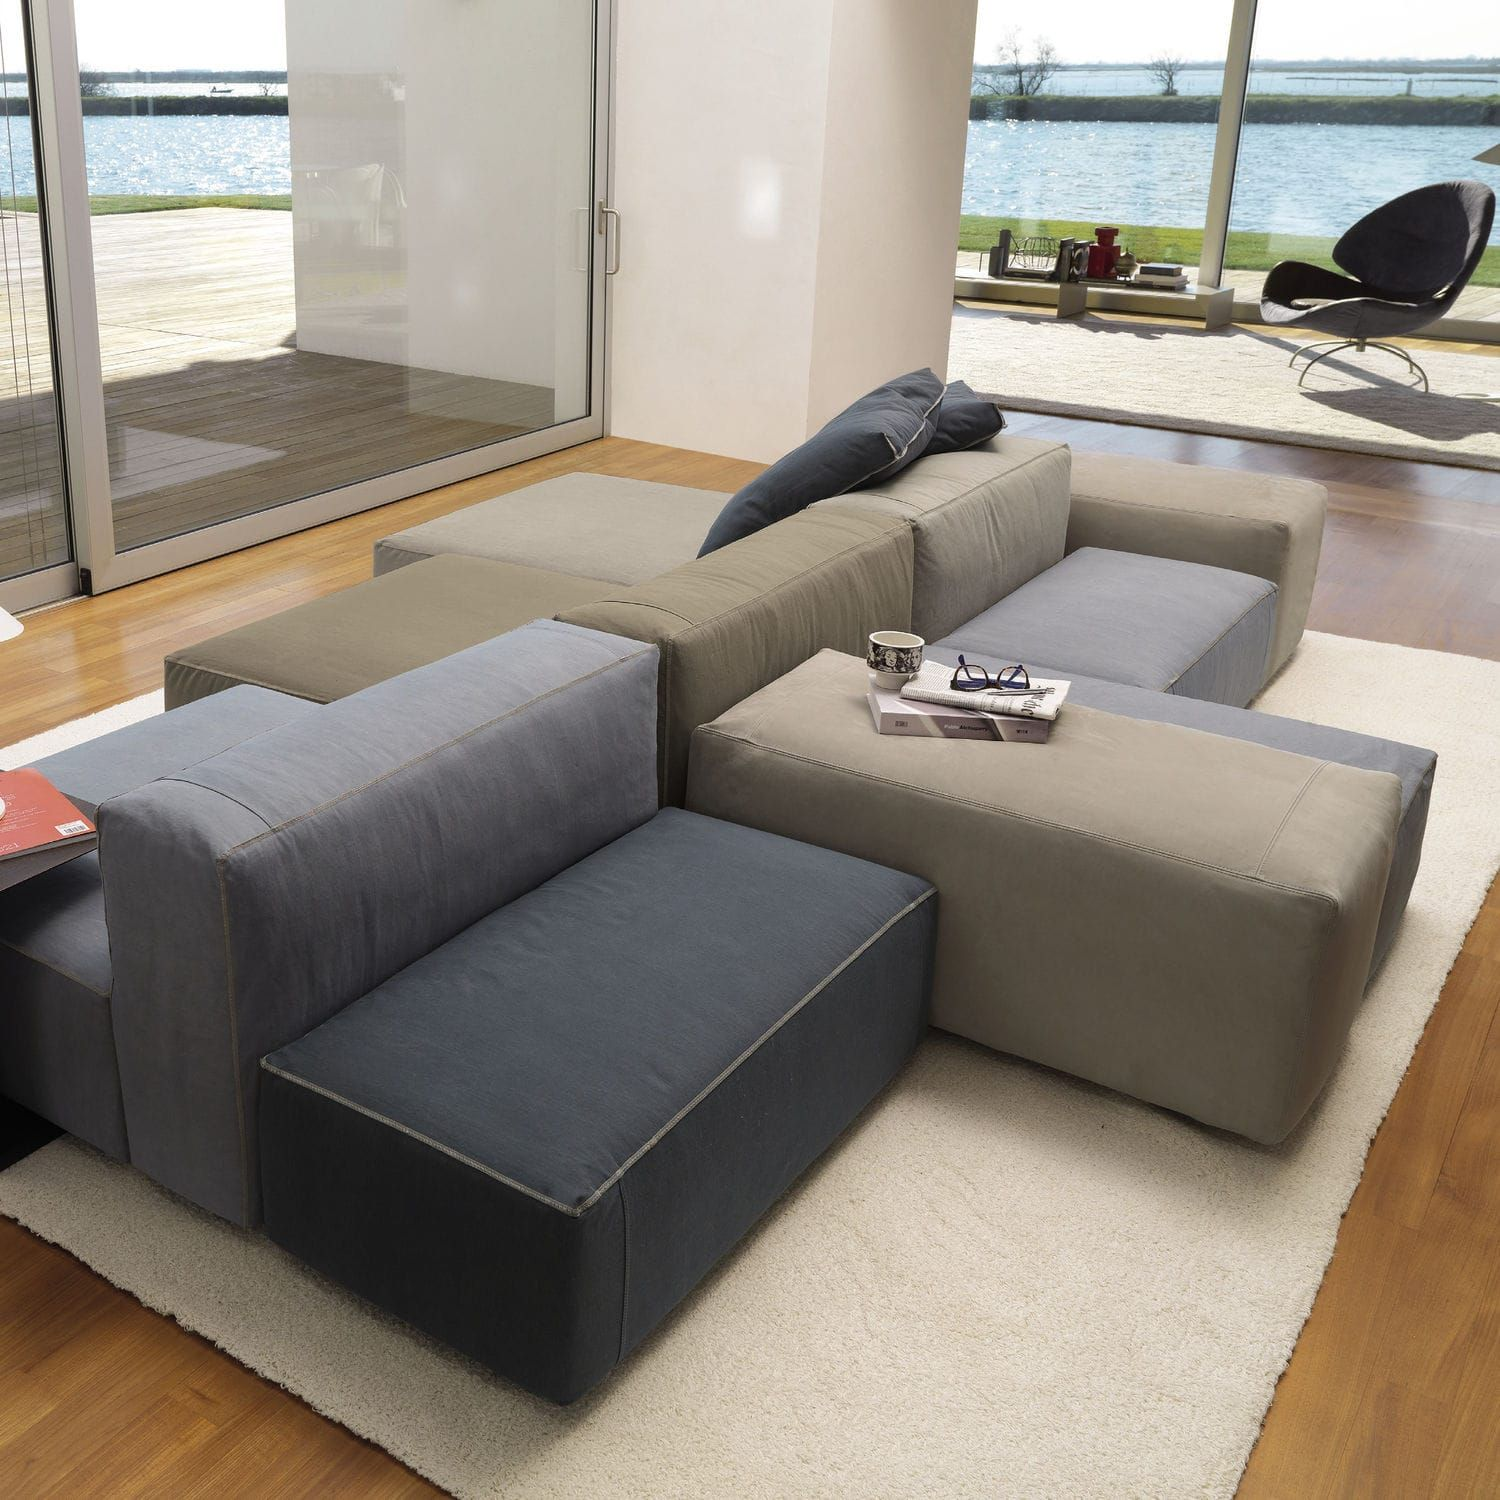 Modular Sofa Leather Sectional Sofas Modular Sofa Leather